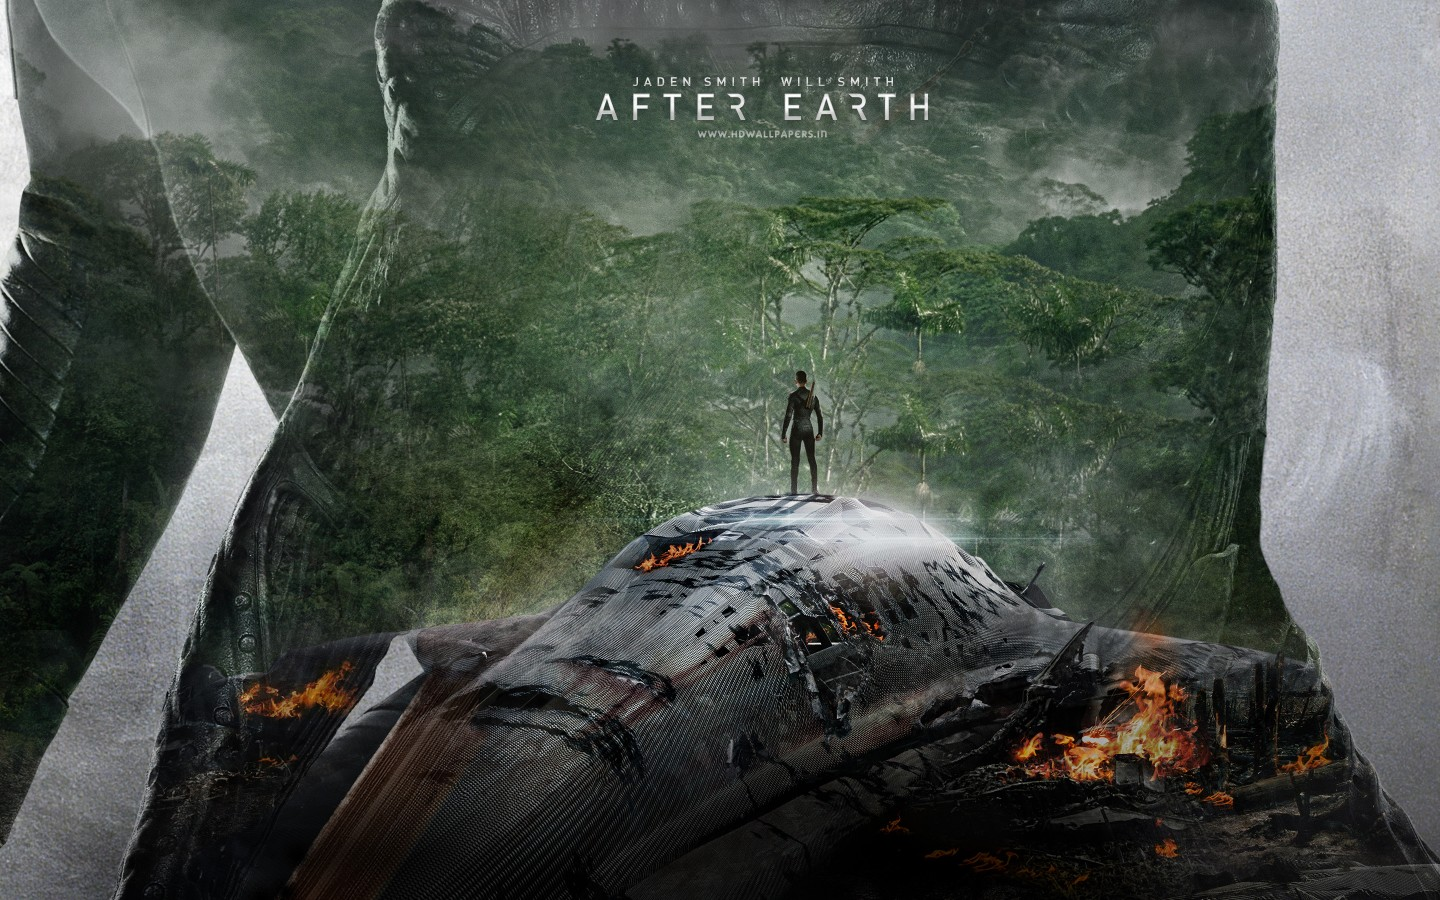 Iphone 5 Wallpaper Hd Star Wars After Earth Movie 2013 Wallpapers Hd Wallpapers Id 12300